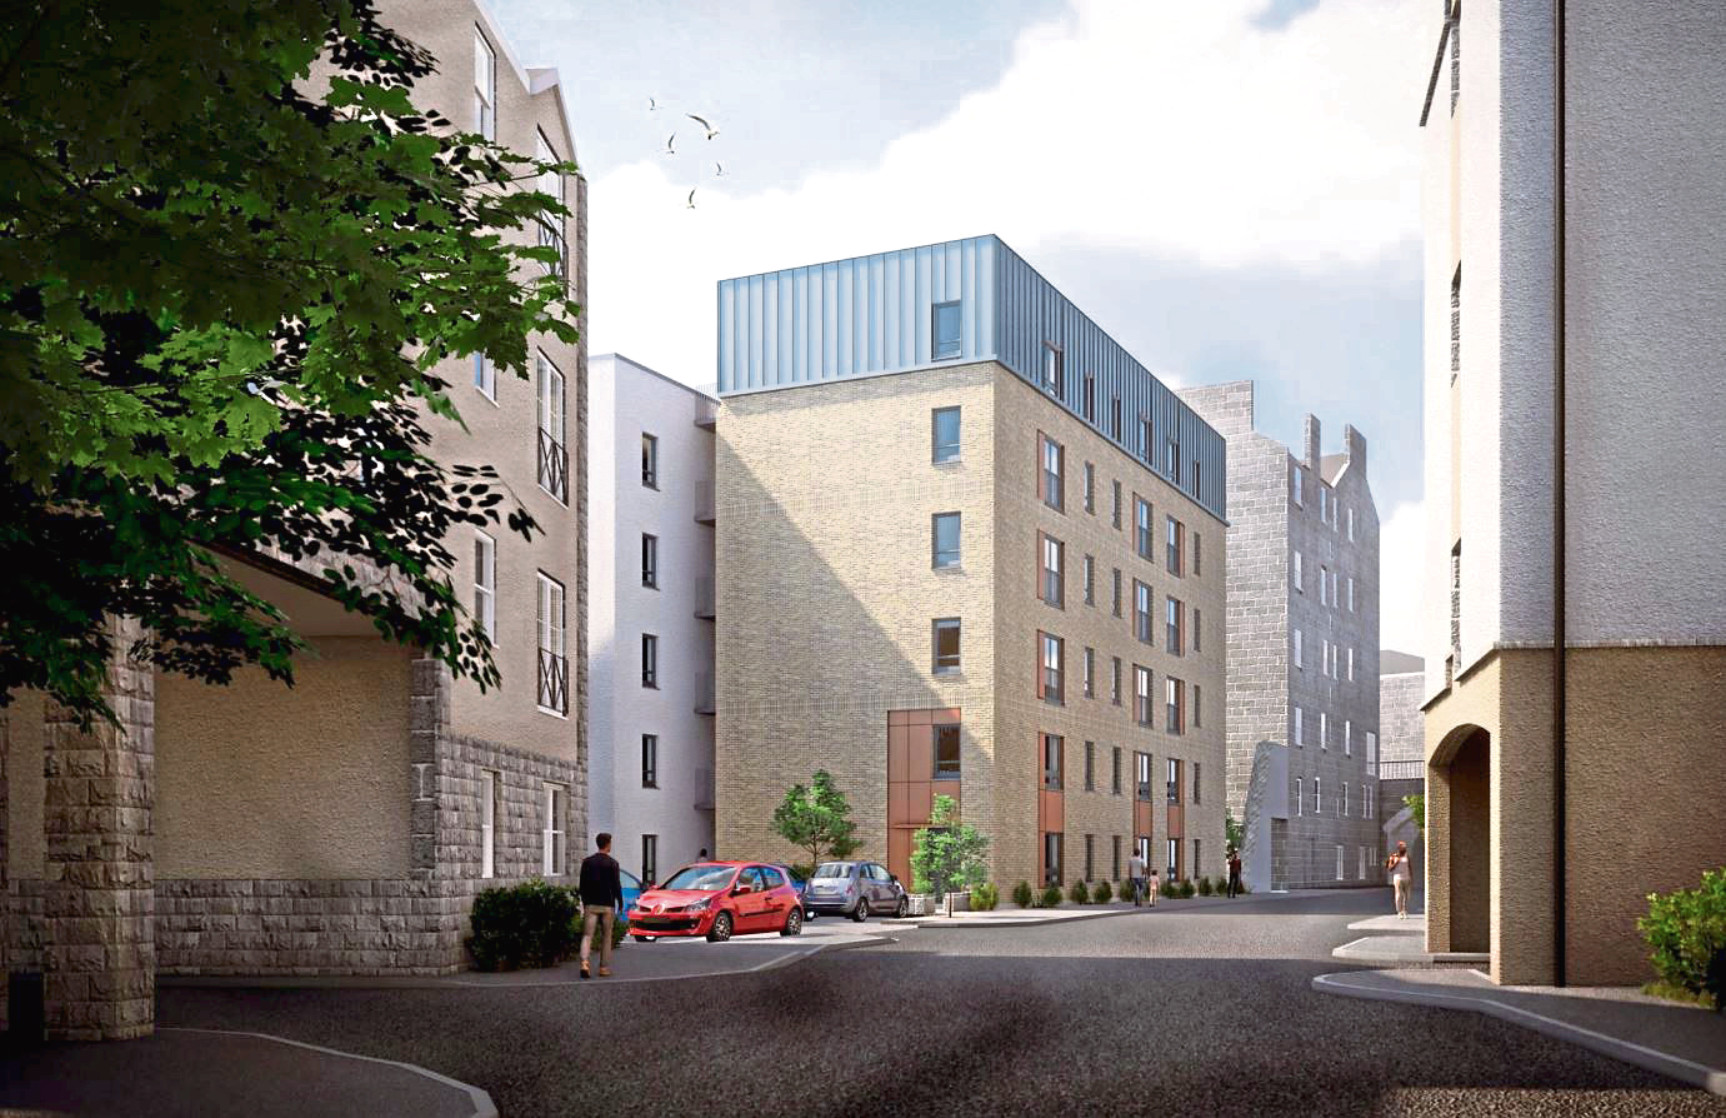 An artist impression of the planned development at Union Glen